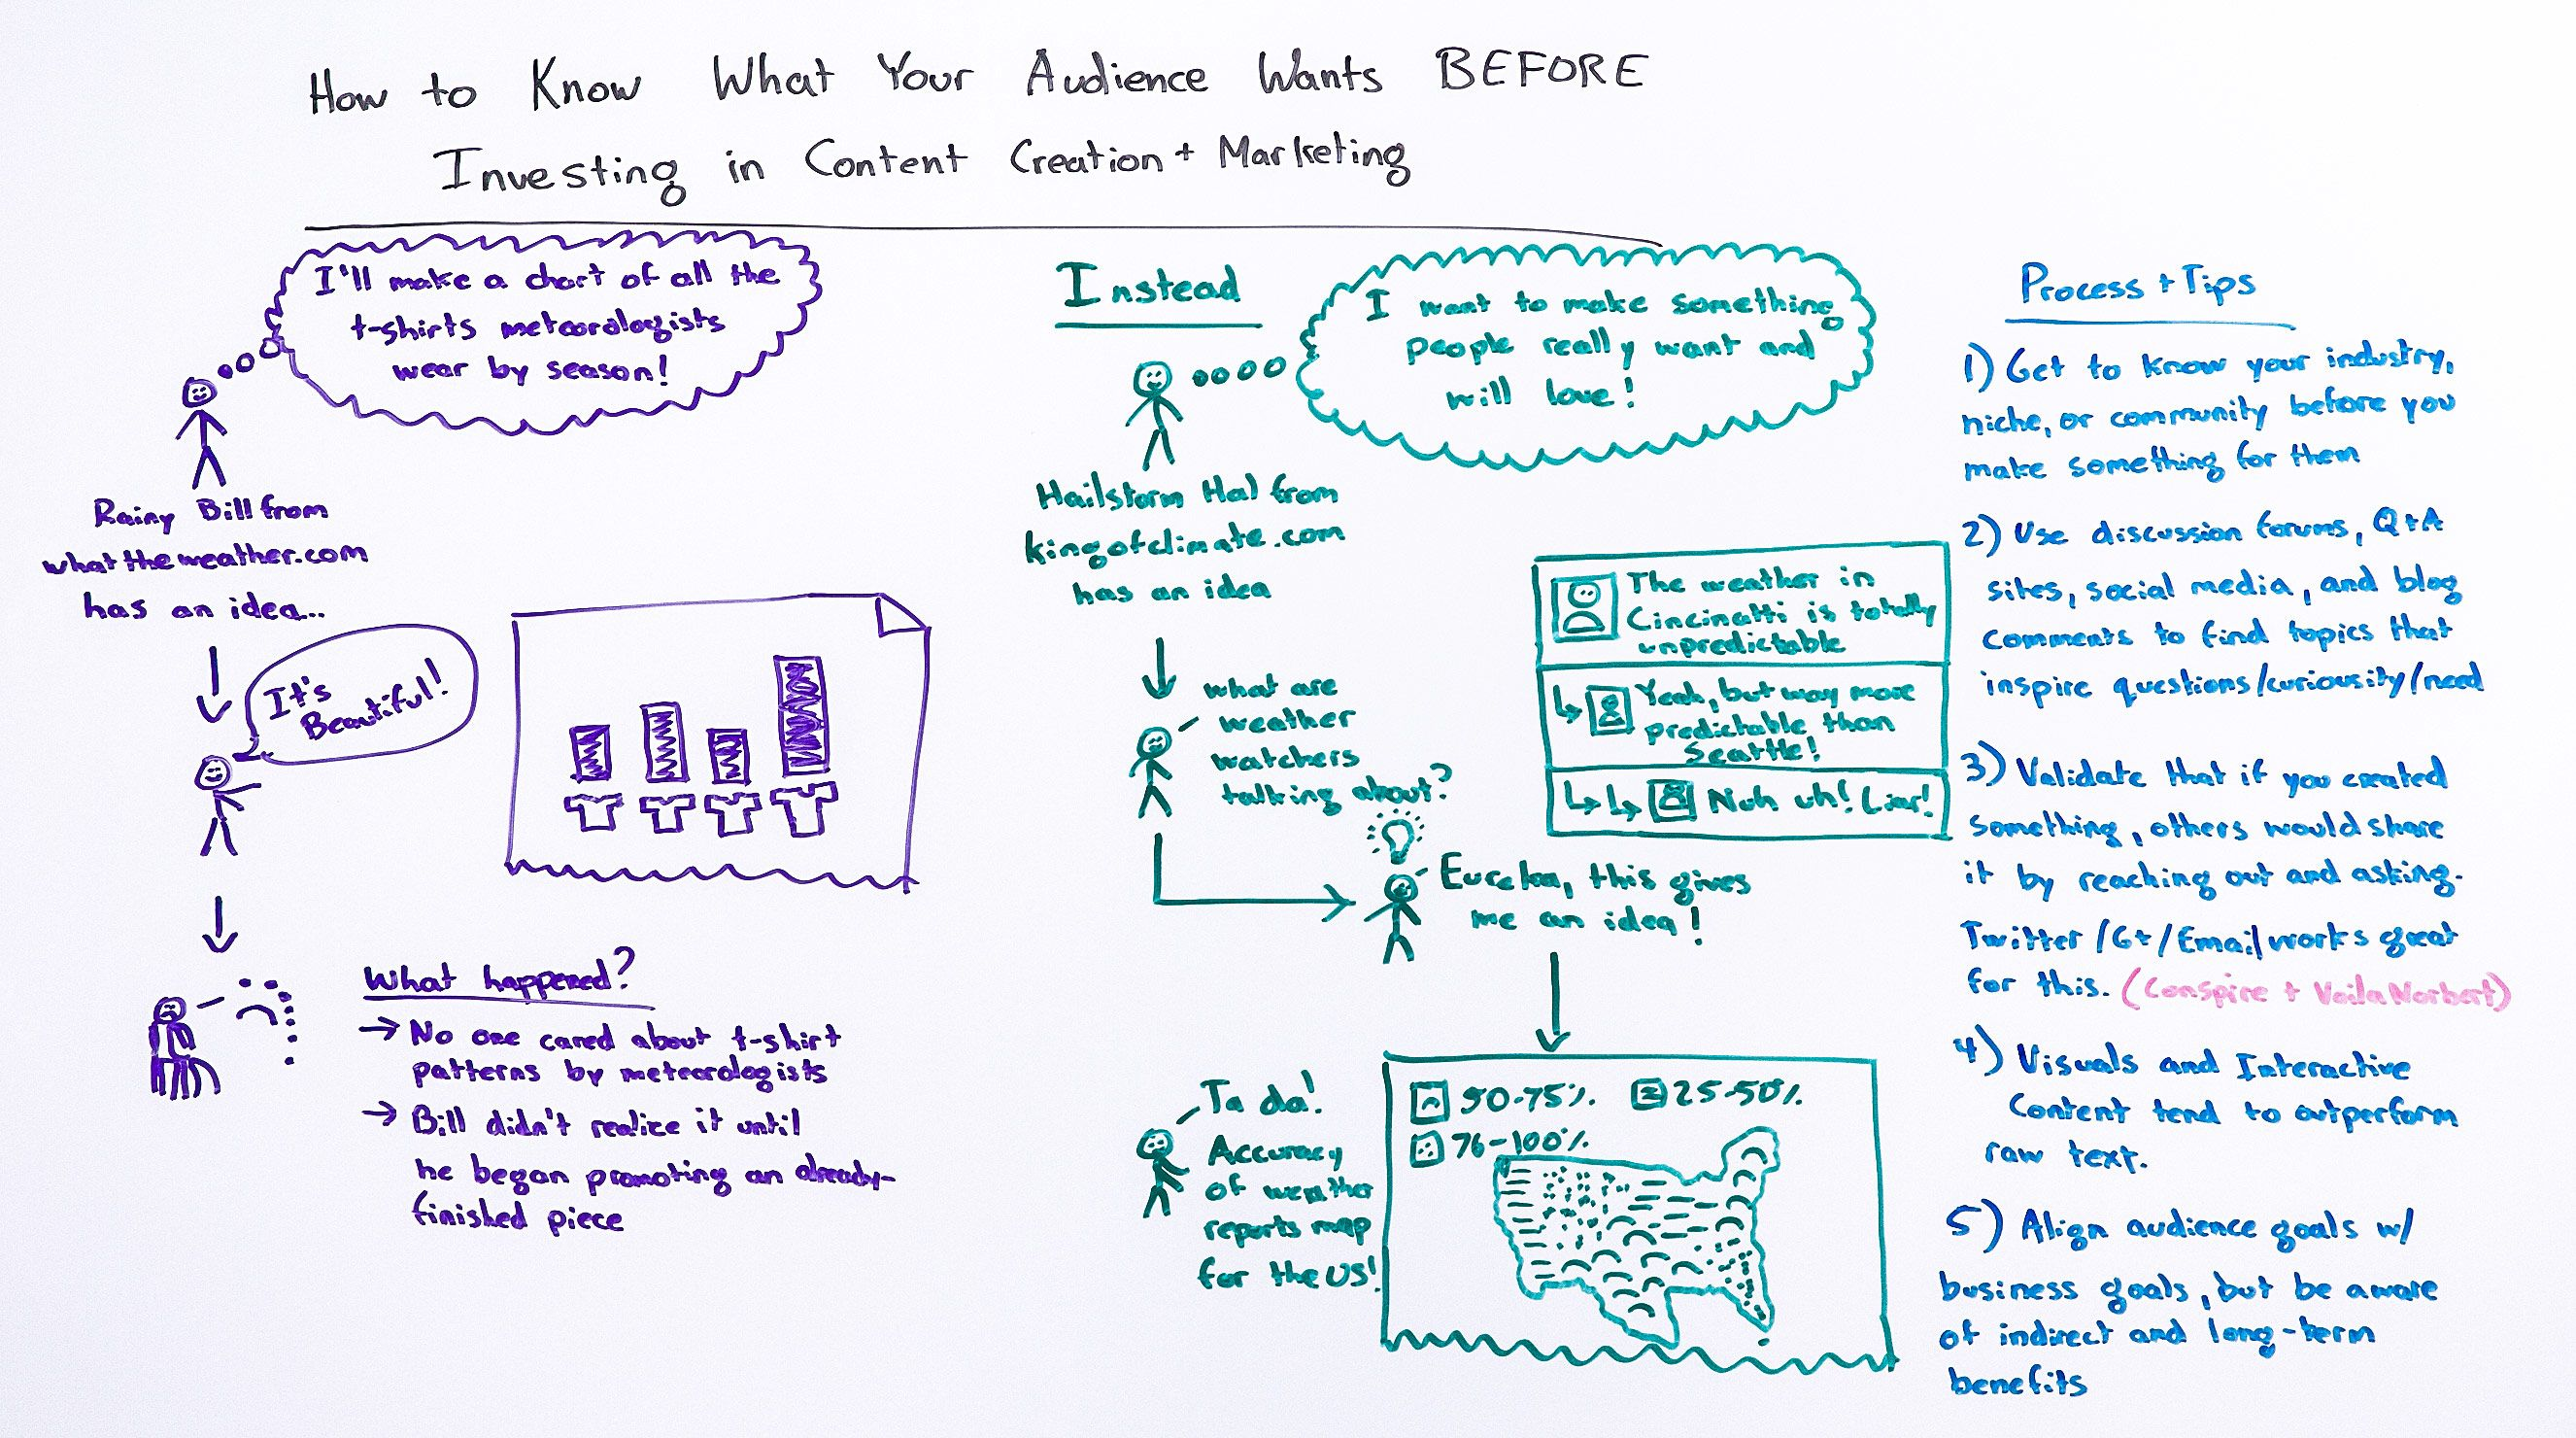 Know What Your Audience Wants Before You Invest in Content Creation and Marketing - Whiteboard